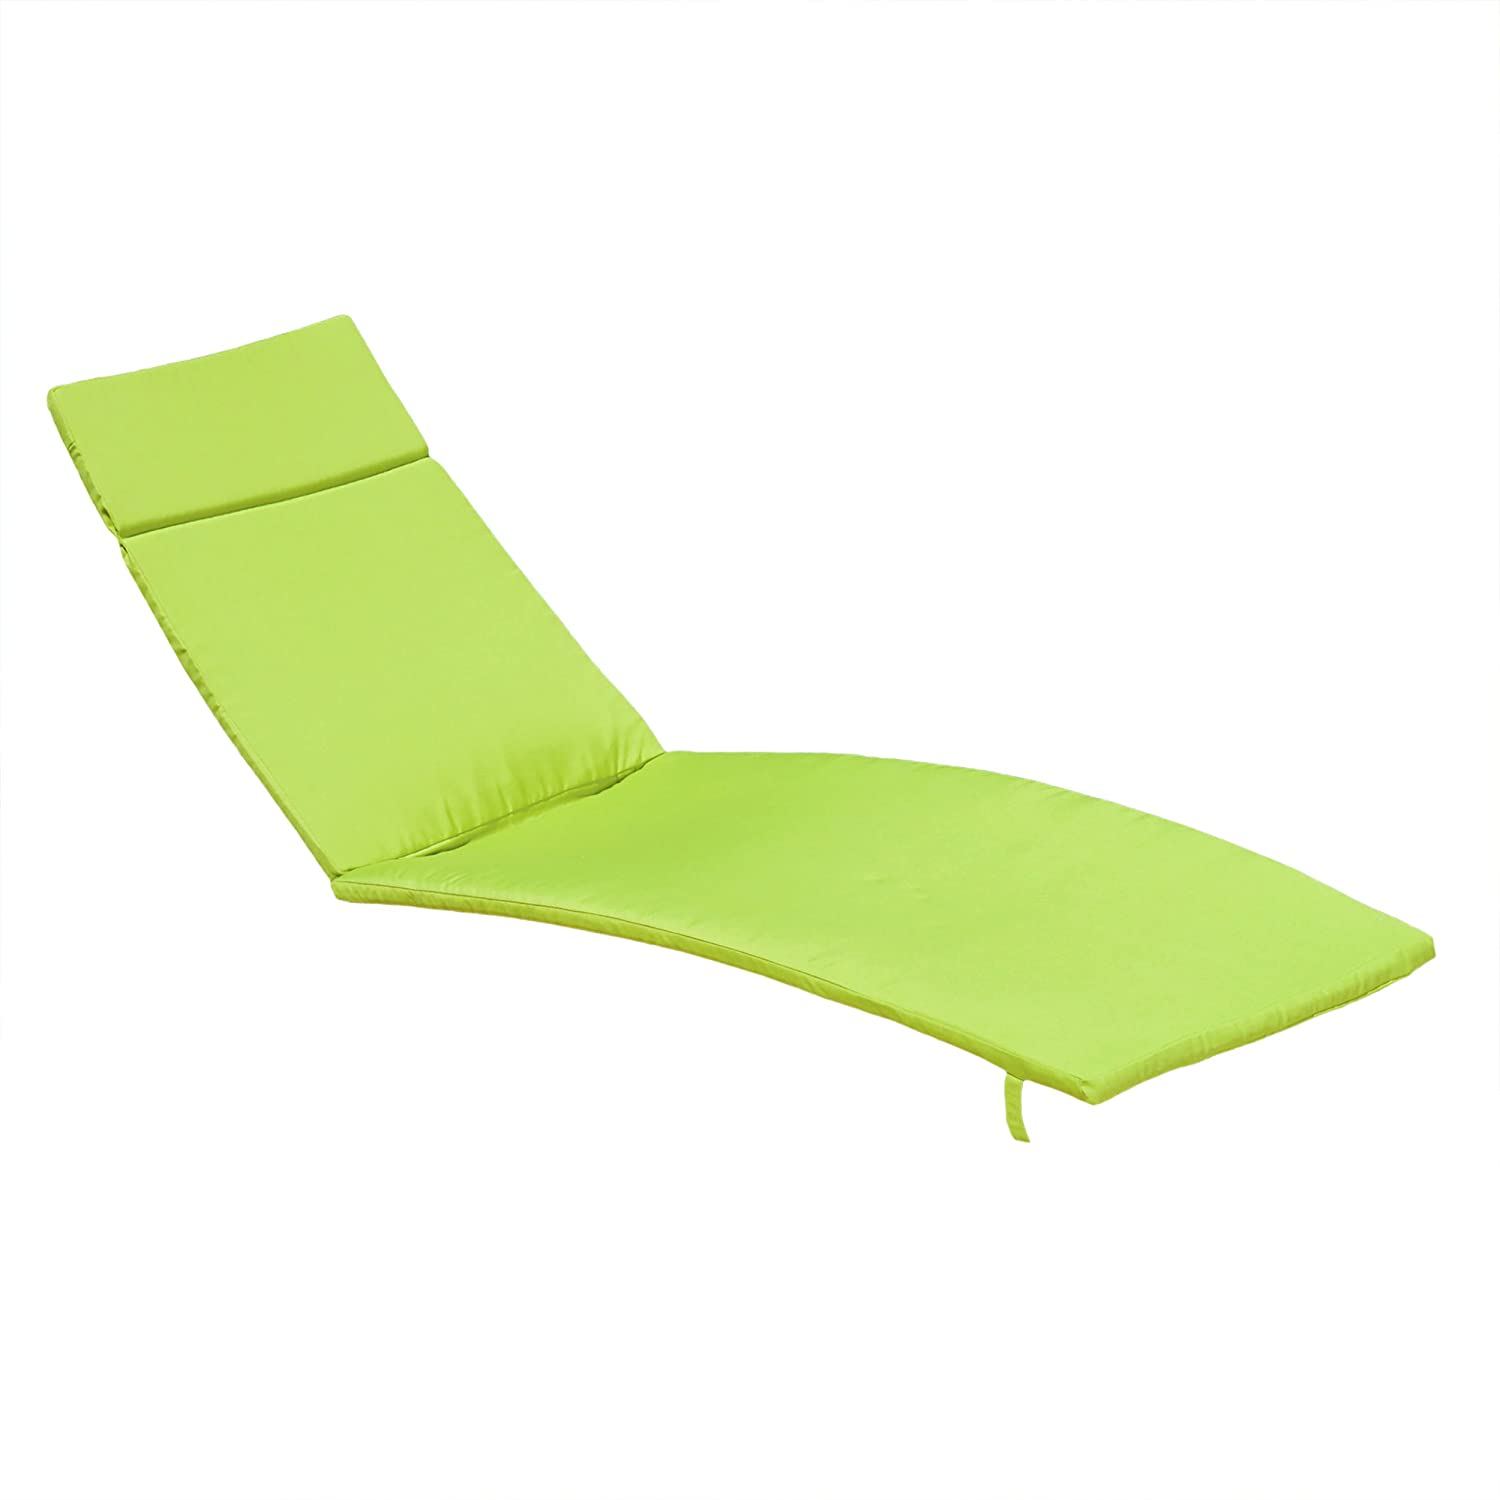 green of best amp modular ikea furniture sofa the lounge throughout chaise image sectionals sofas